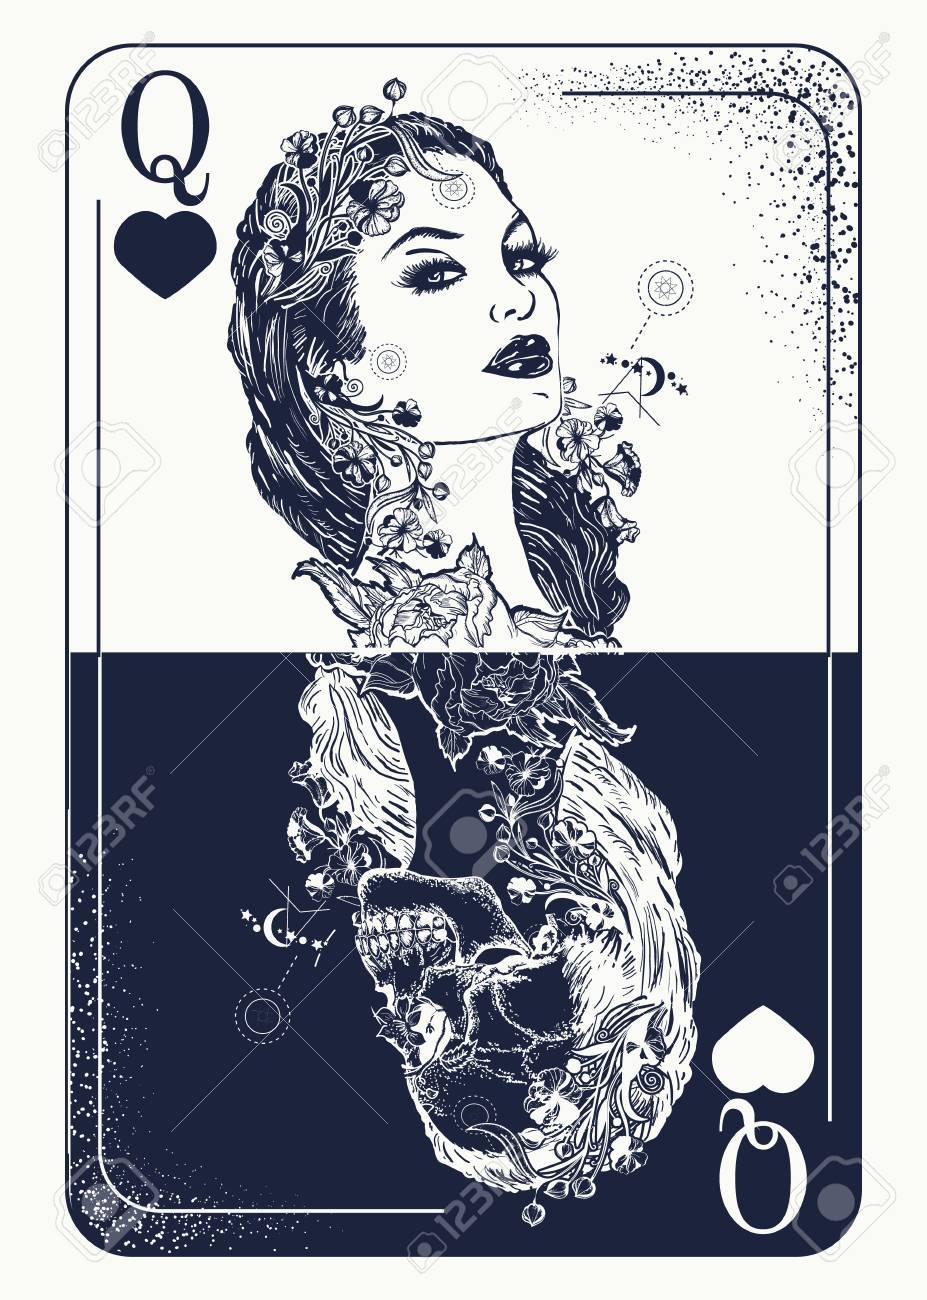 Queen Playing Card Tattoo And T Shirt Design Beautiful Girl Skeleton